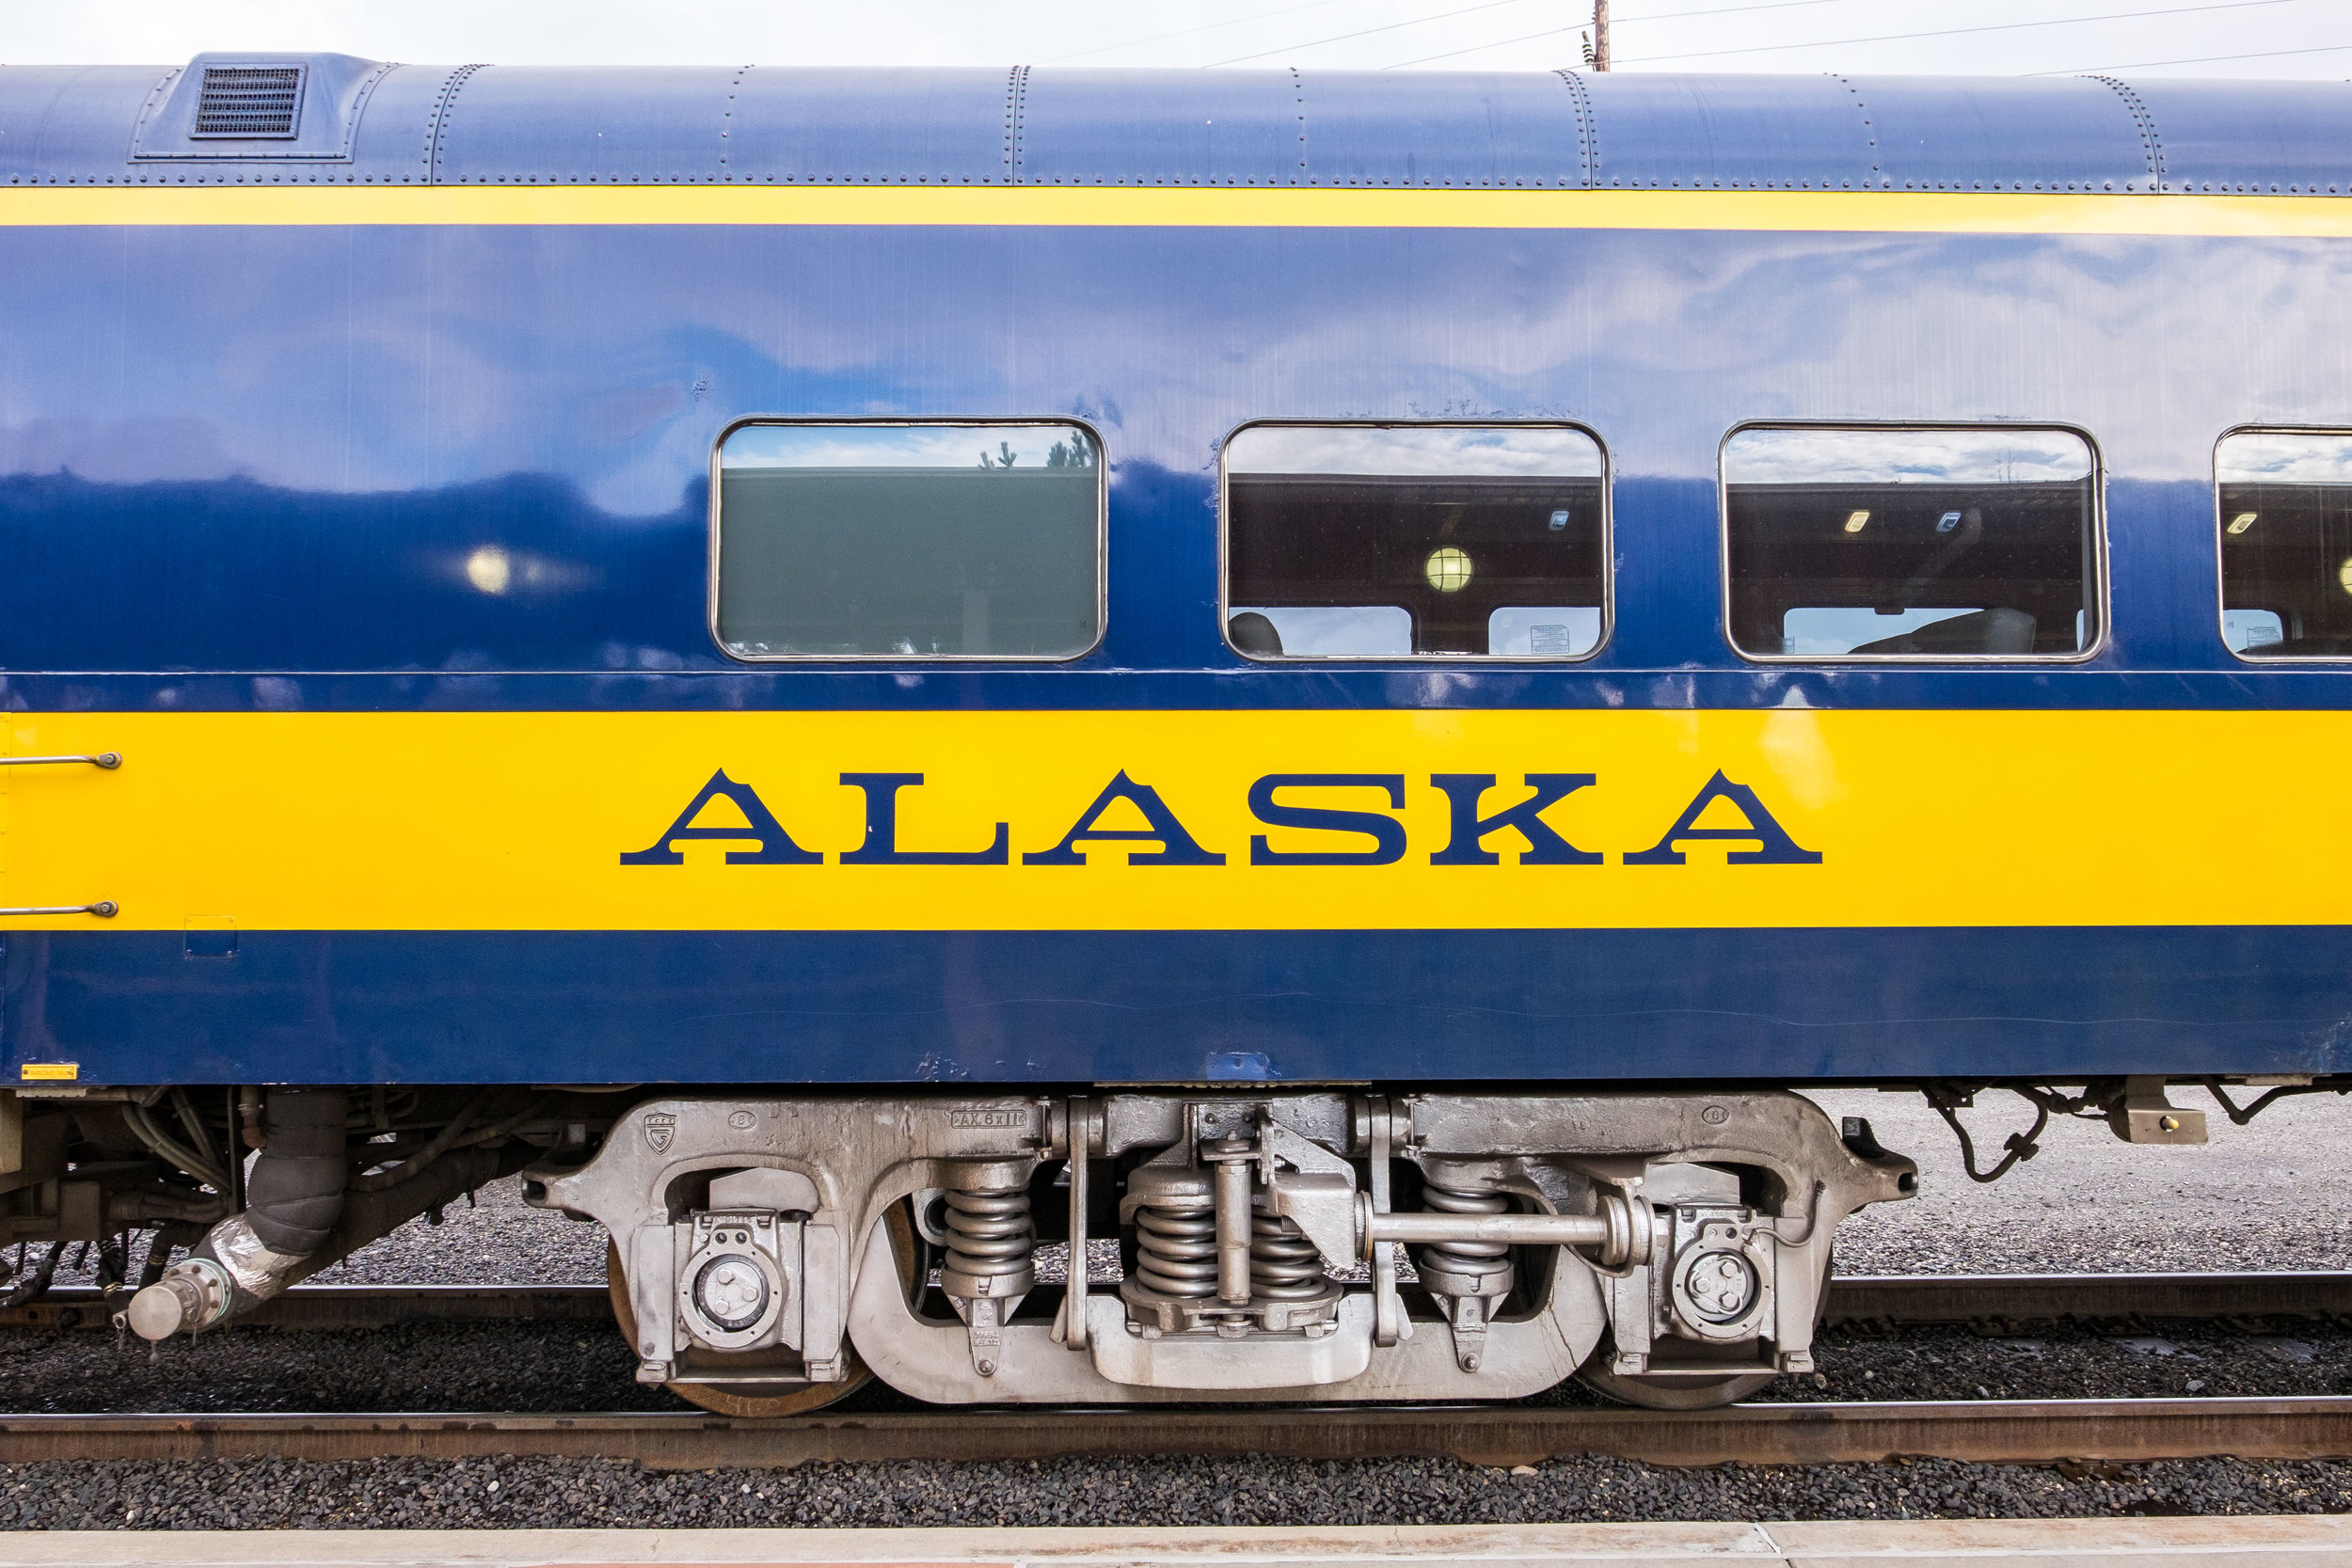 Old-time train: the Alaska Railroad, originally called the Alaska Central Railway, was the first railroad in Alaska. It was built in 1903.